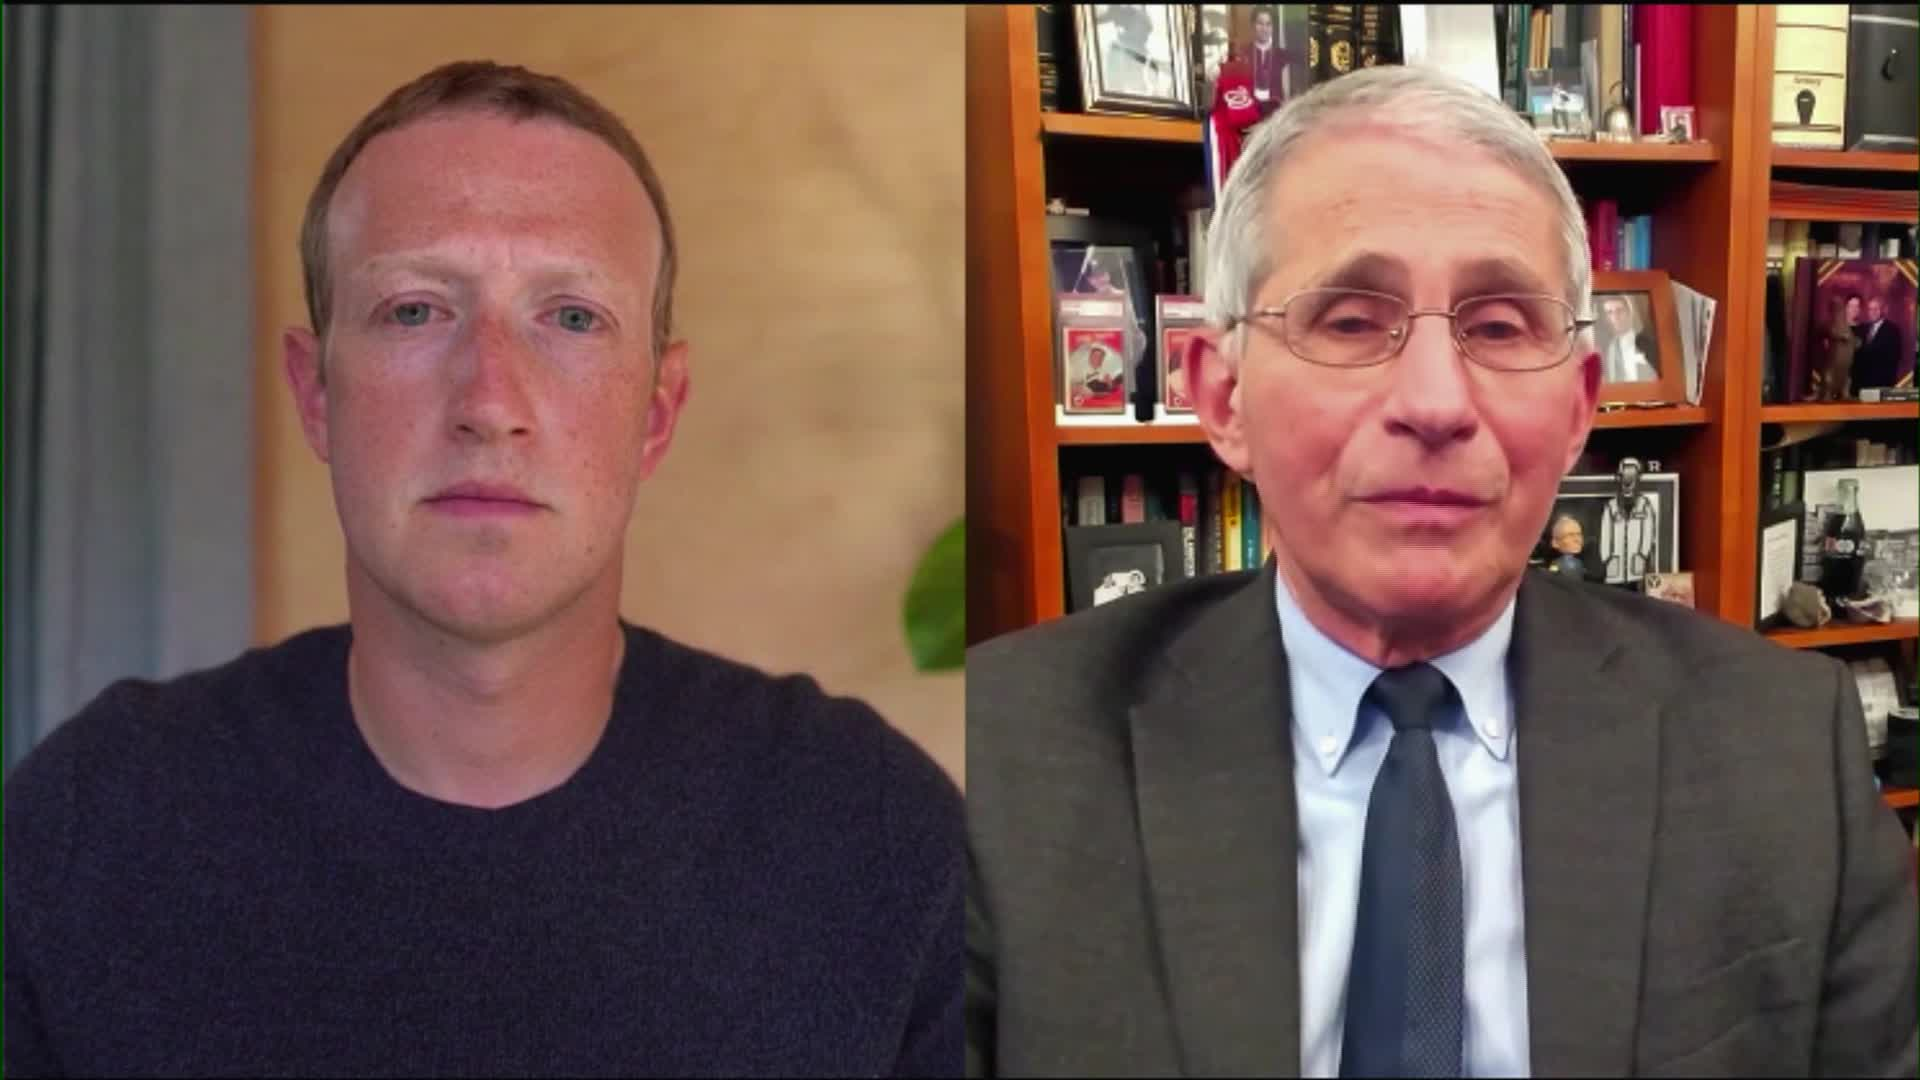 Mark Zuckerberg and Dr. Fauci.